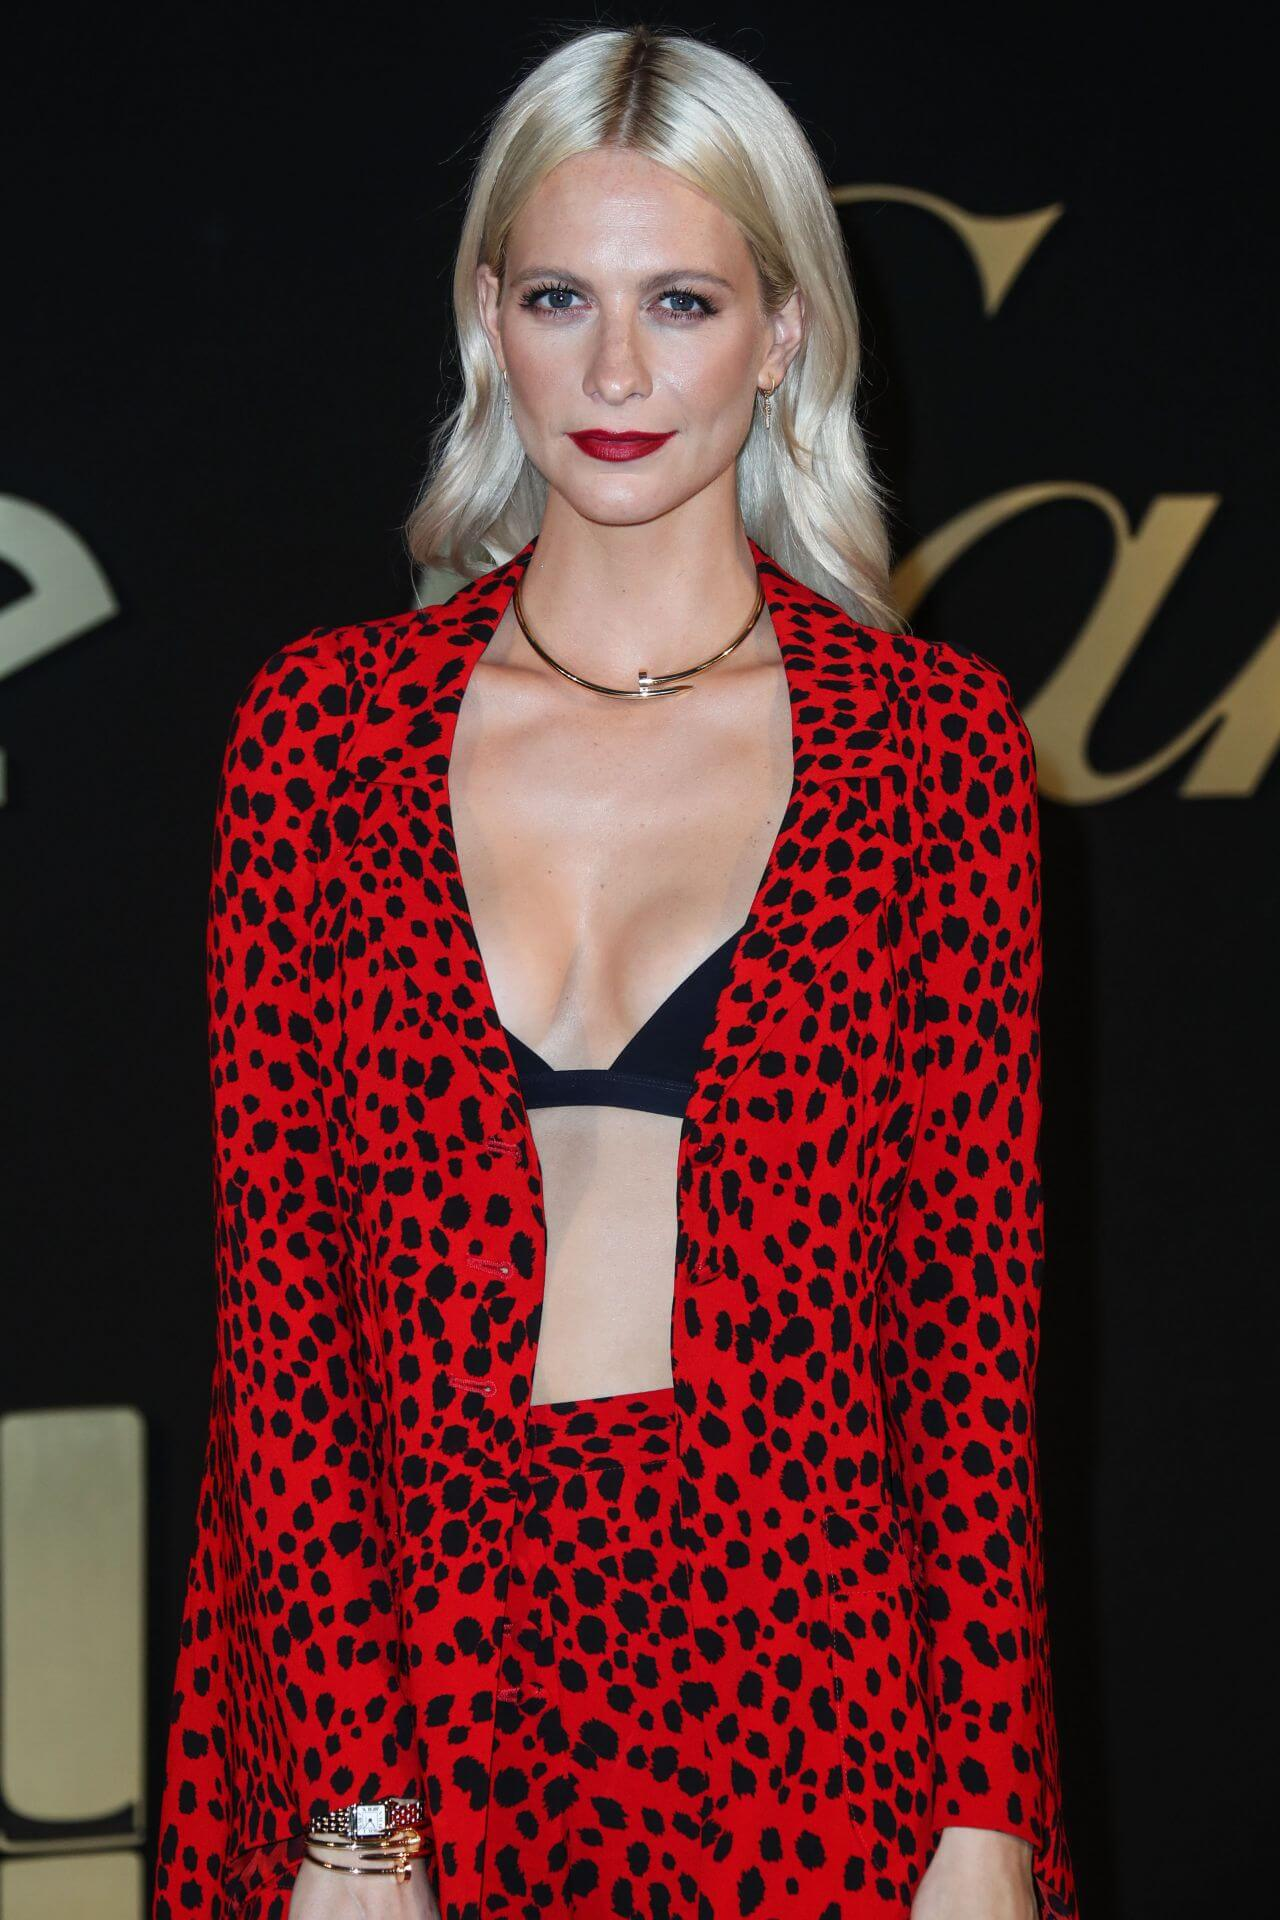 Poppy Delevingne sexy cleavage pic